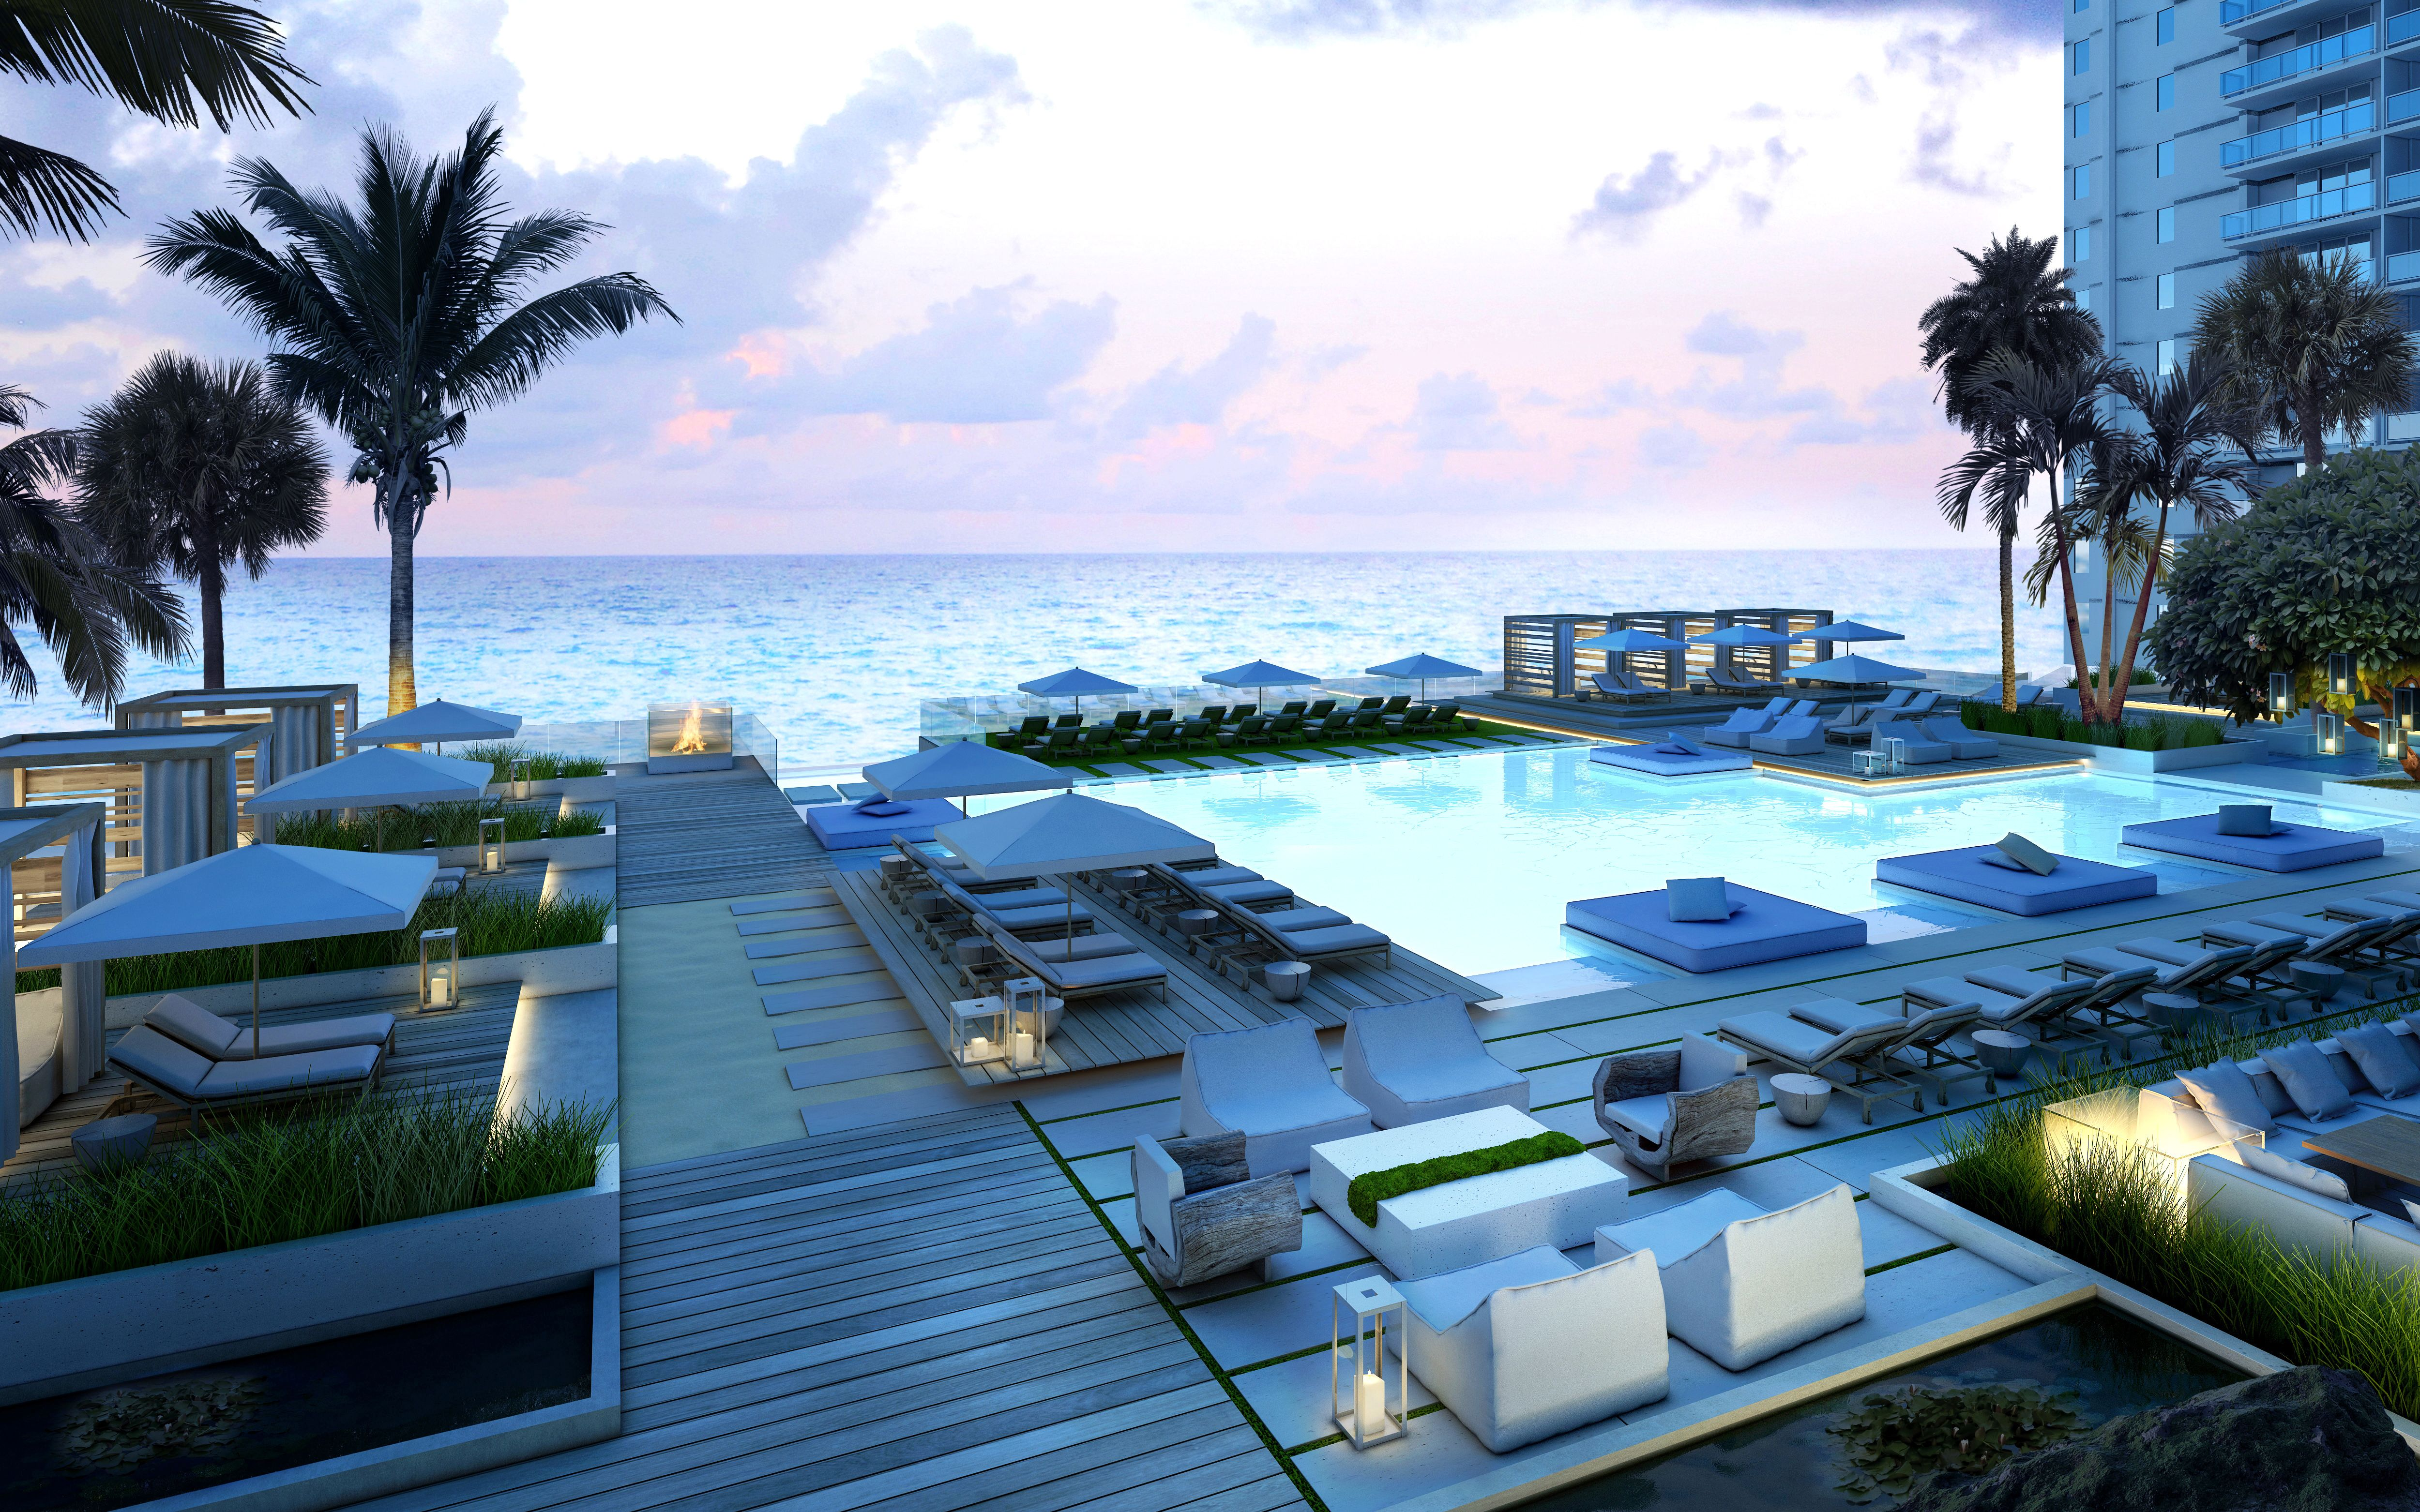 1 Hotel And Homes South Beach Miami Design Pool